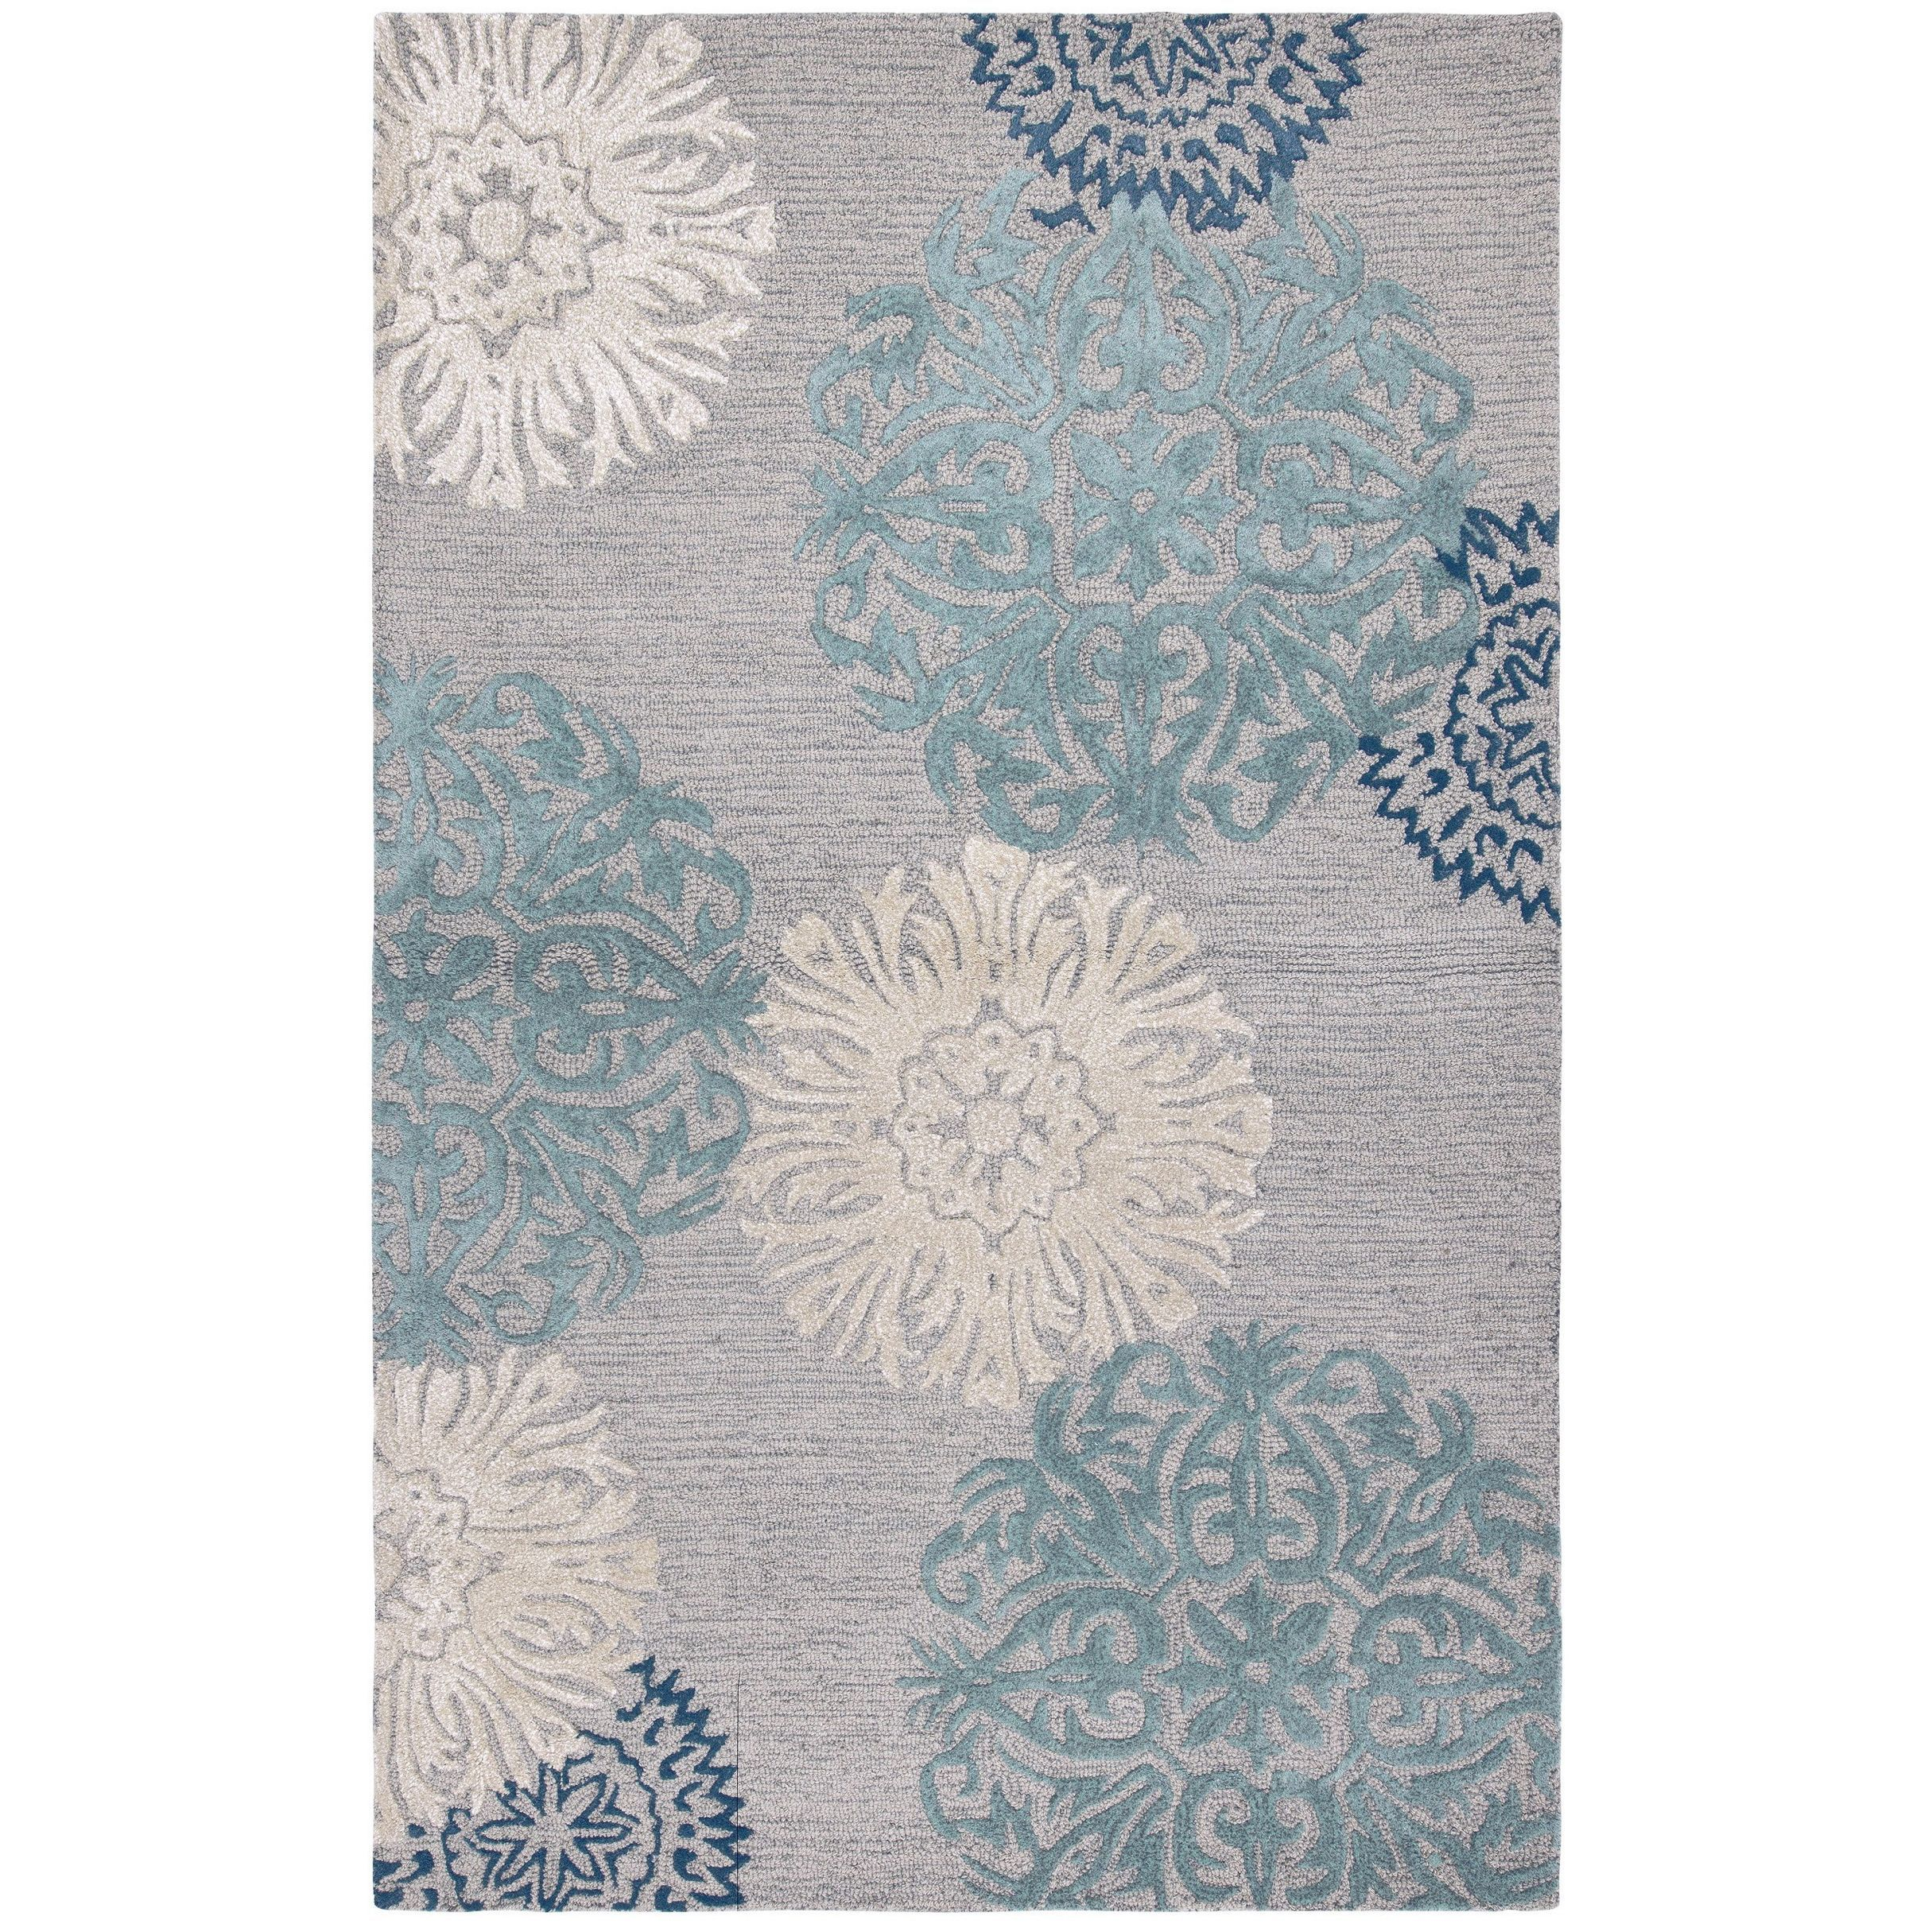 Charming Collection Light Grey Medallion Hand Tufted Wool Rug 5